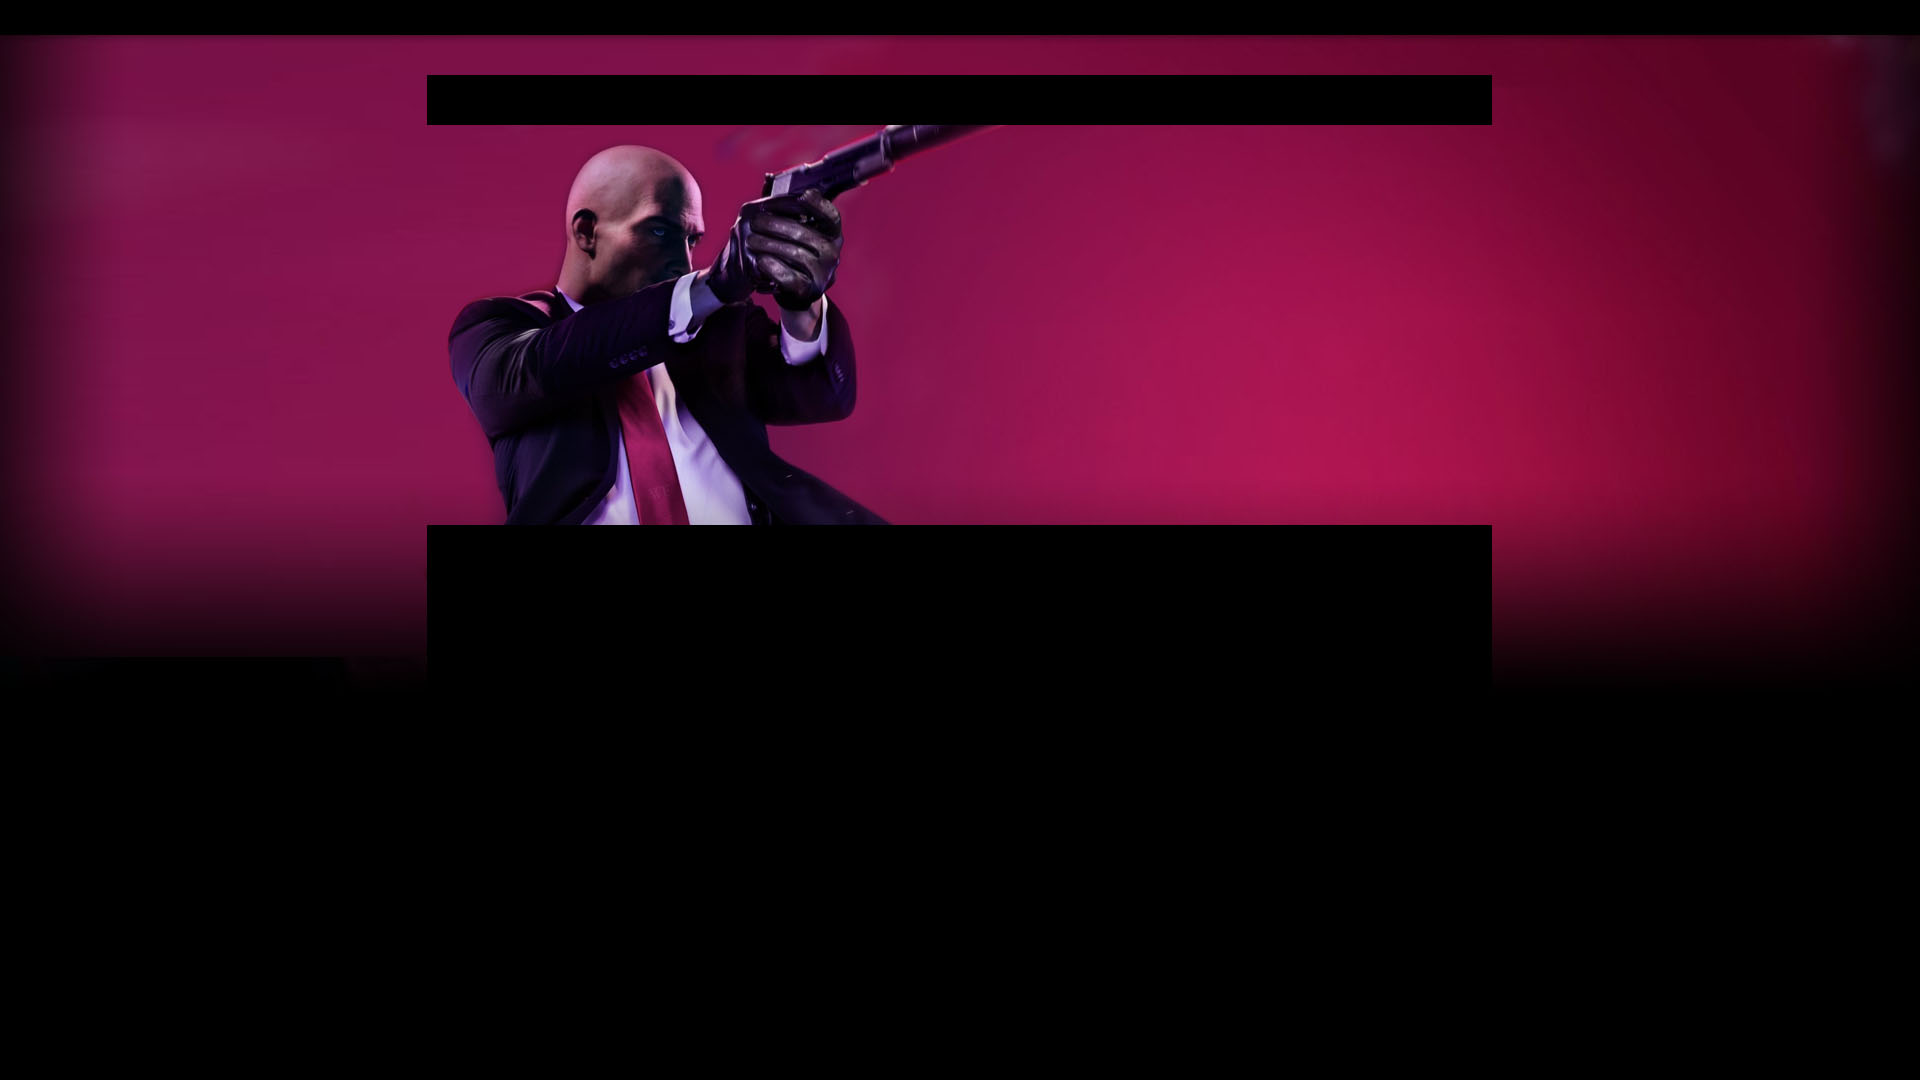 Hitman 2 [PC/PS4/Xbox One] video game